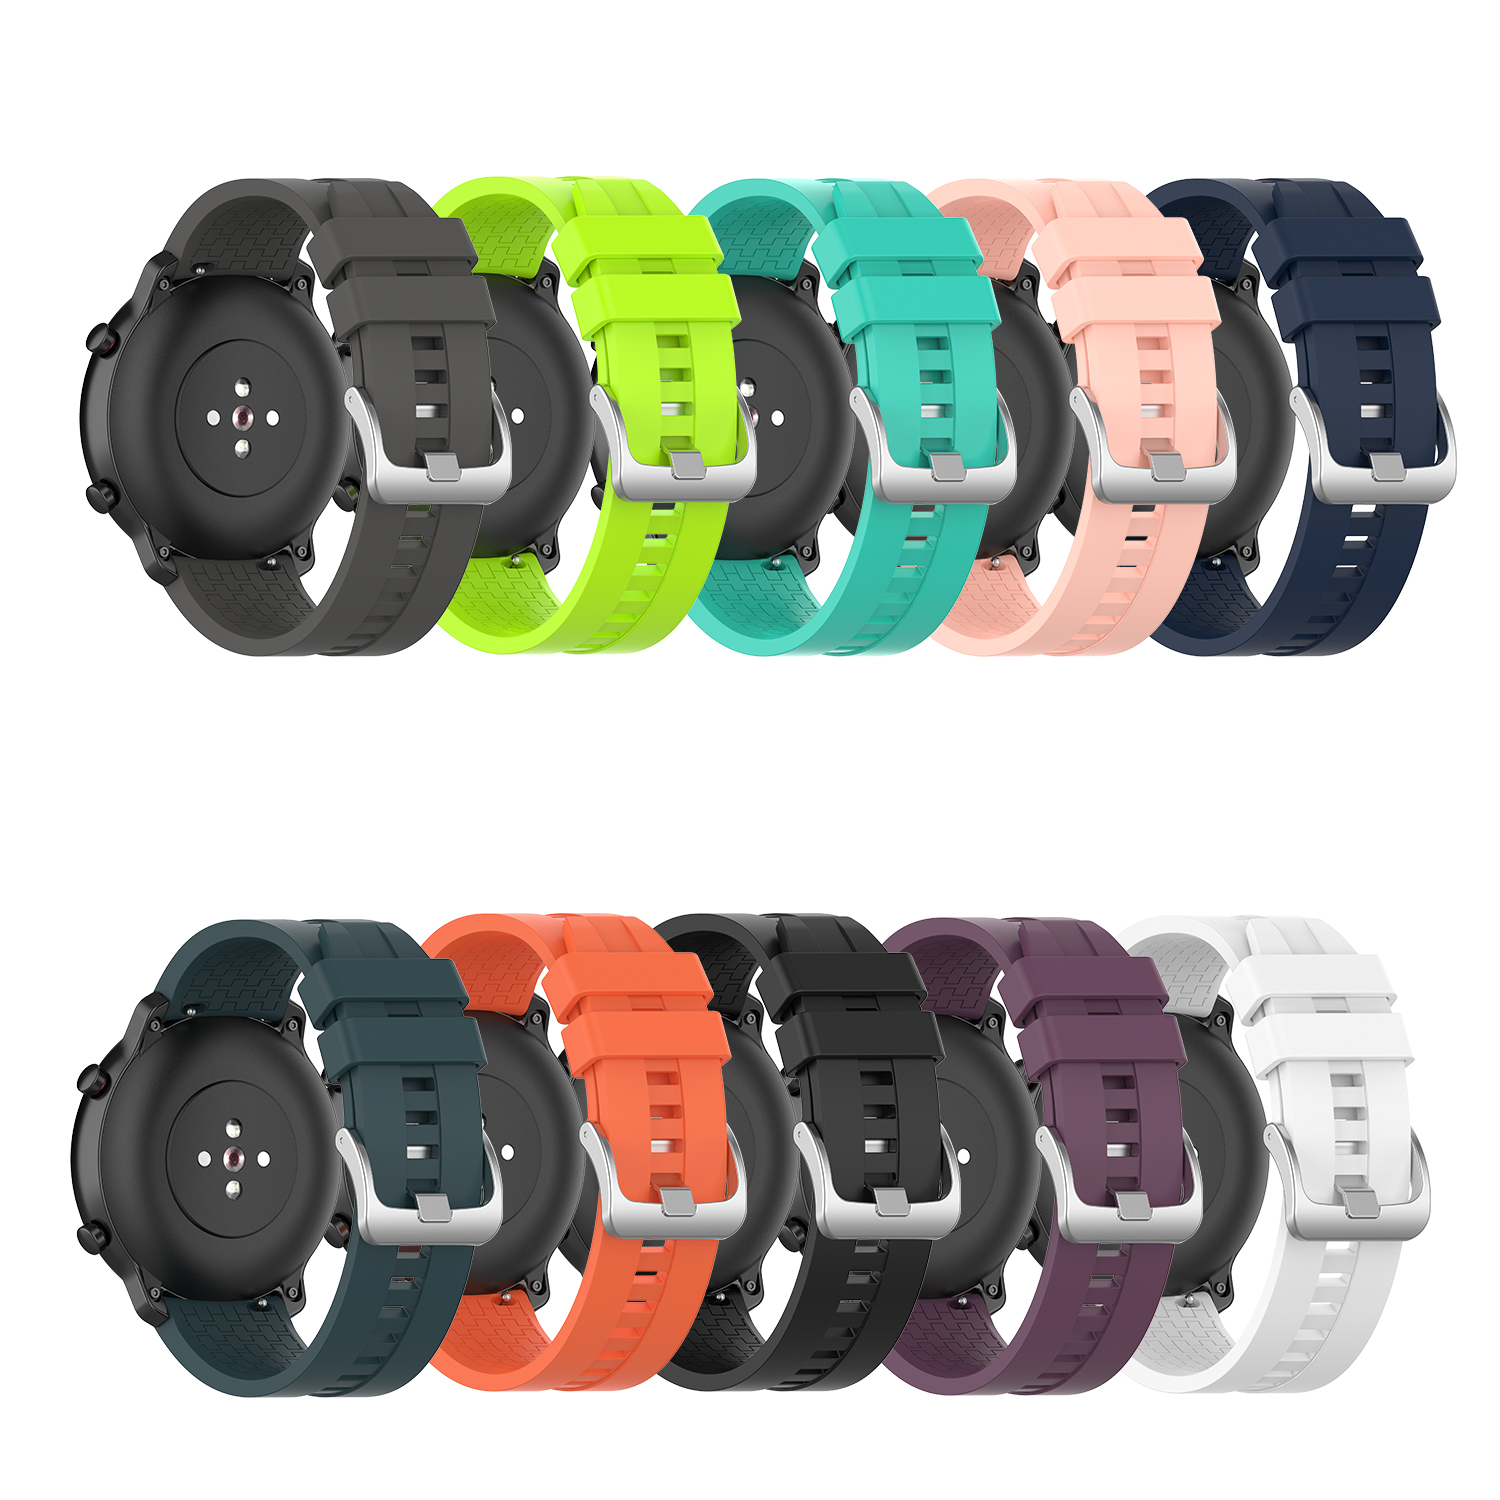 Strap Wristband-Accessories Watch Amazfit Gtr Huami Silicone Samsung 22mm-Width for Steel-Buckle